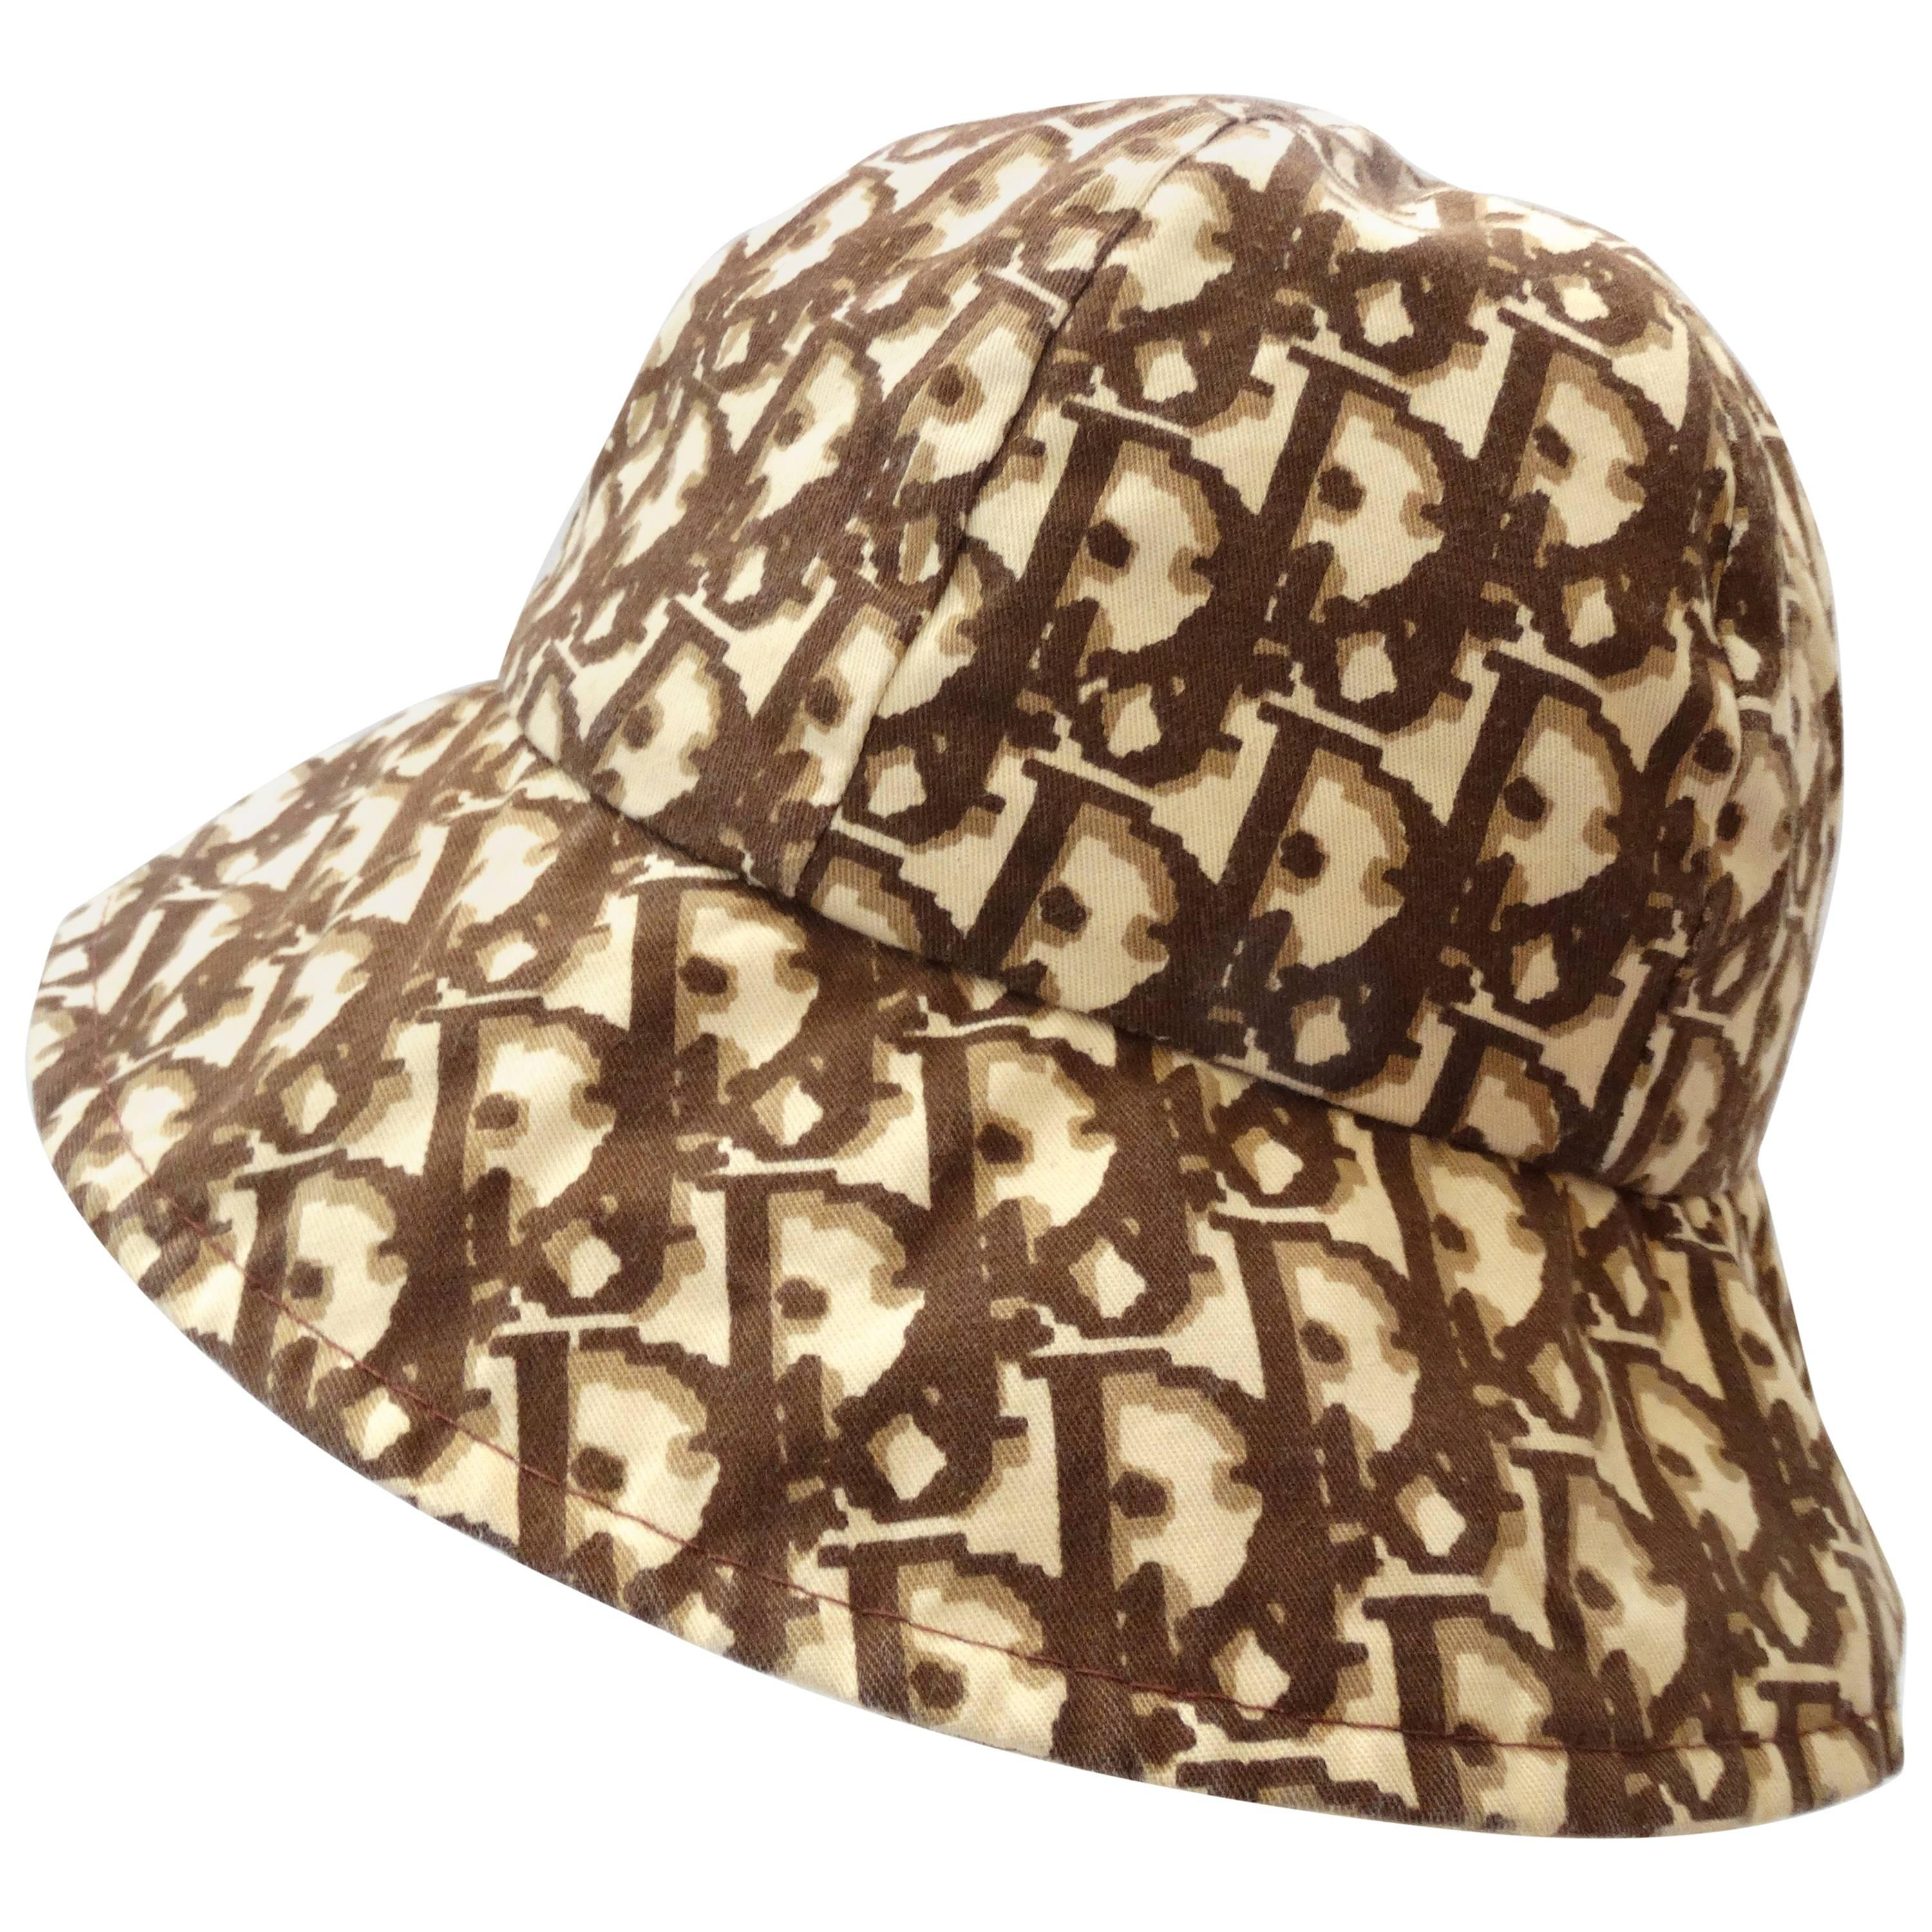 46256278be2 1990s Christian Dior Monogram Brown and Tan Bucket Hat at 1stdibs